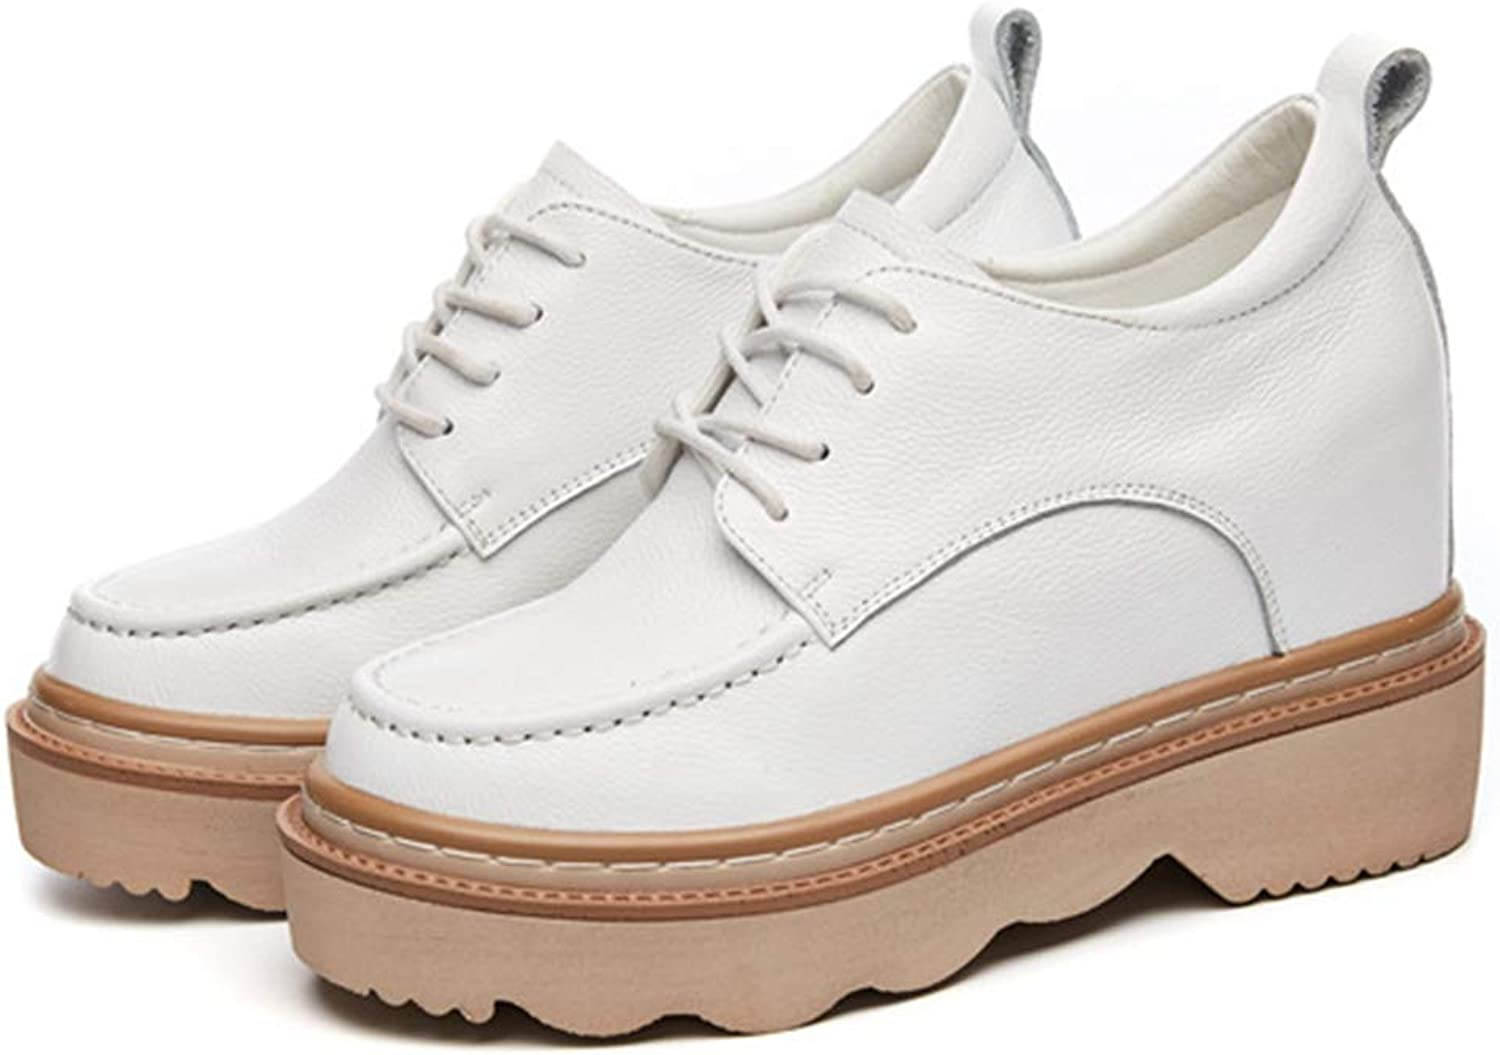 T-JULY Woman Autumn Genuine Leather Leisure shoes Female Casual Platform White Wedge Sneakres